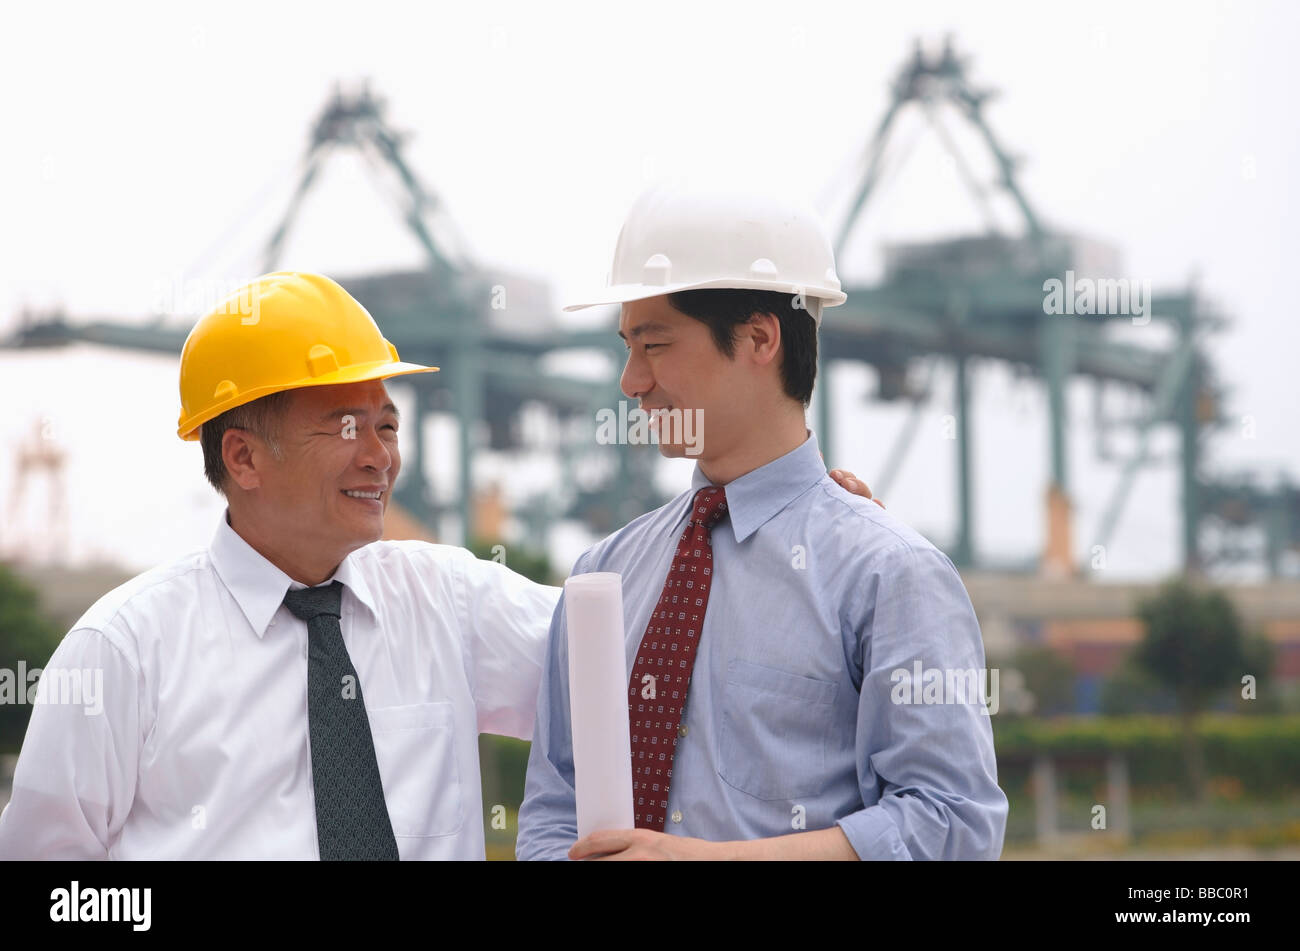 Men with helmets looking at each other - Stock Image